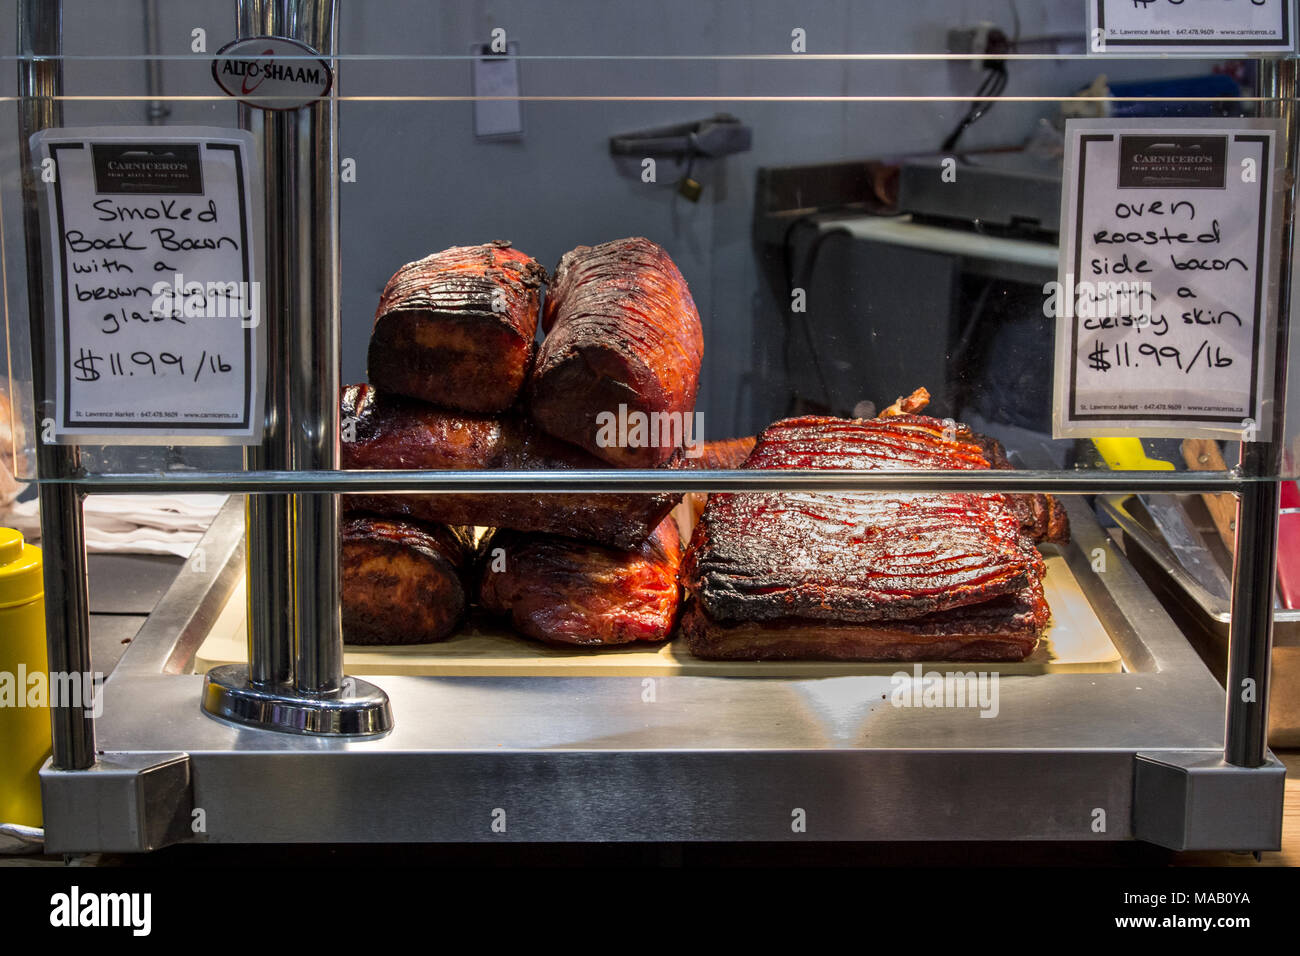 TORONTO, CANADA - DECEMBER 21, 2016: Canadian bacon, also known as peameal, for sale, grilled and cooked, on a shop in St Lawrence Market, downtown To - Stock Image